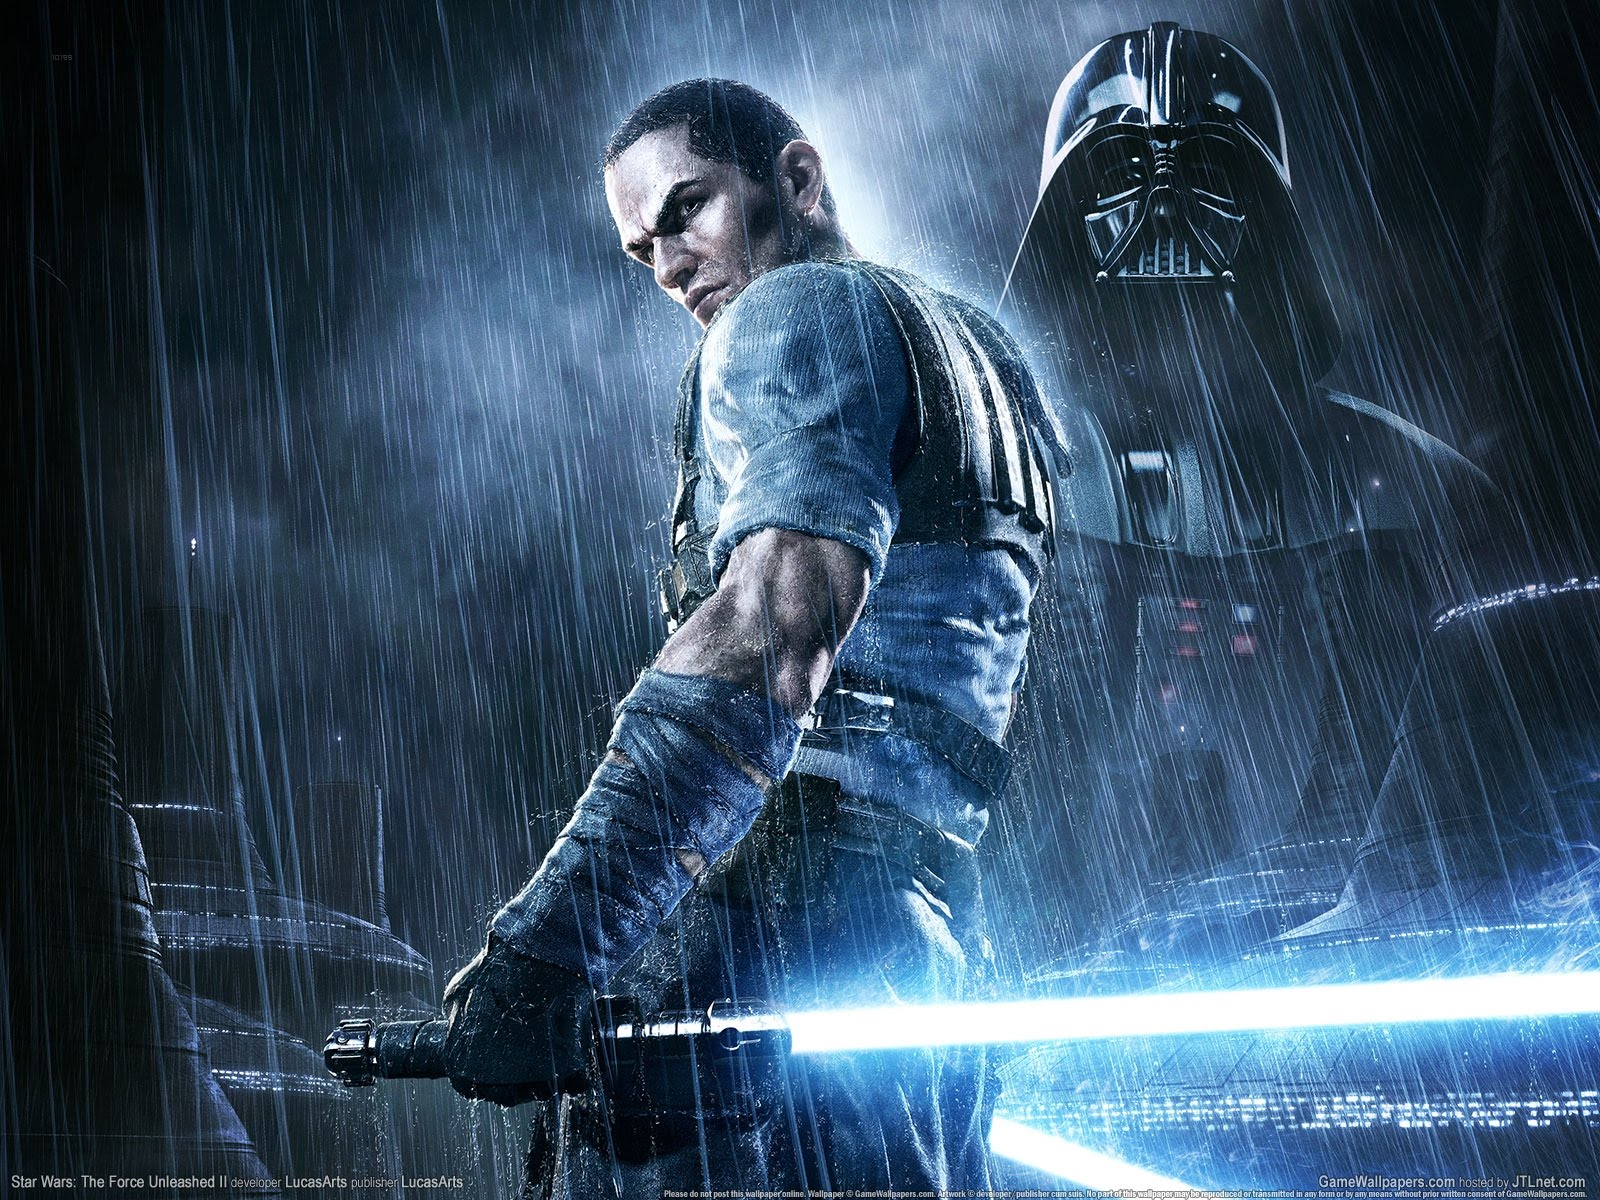 Star Wars The Force Unleashed 2 Wallpapers: DARK RED GAMES: Start Wars Force Unleashed 2